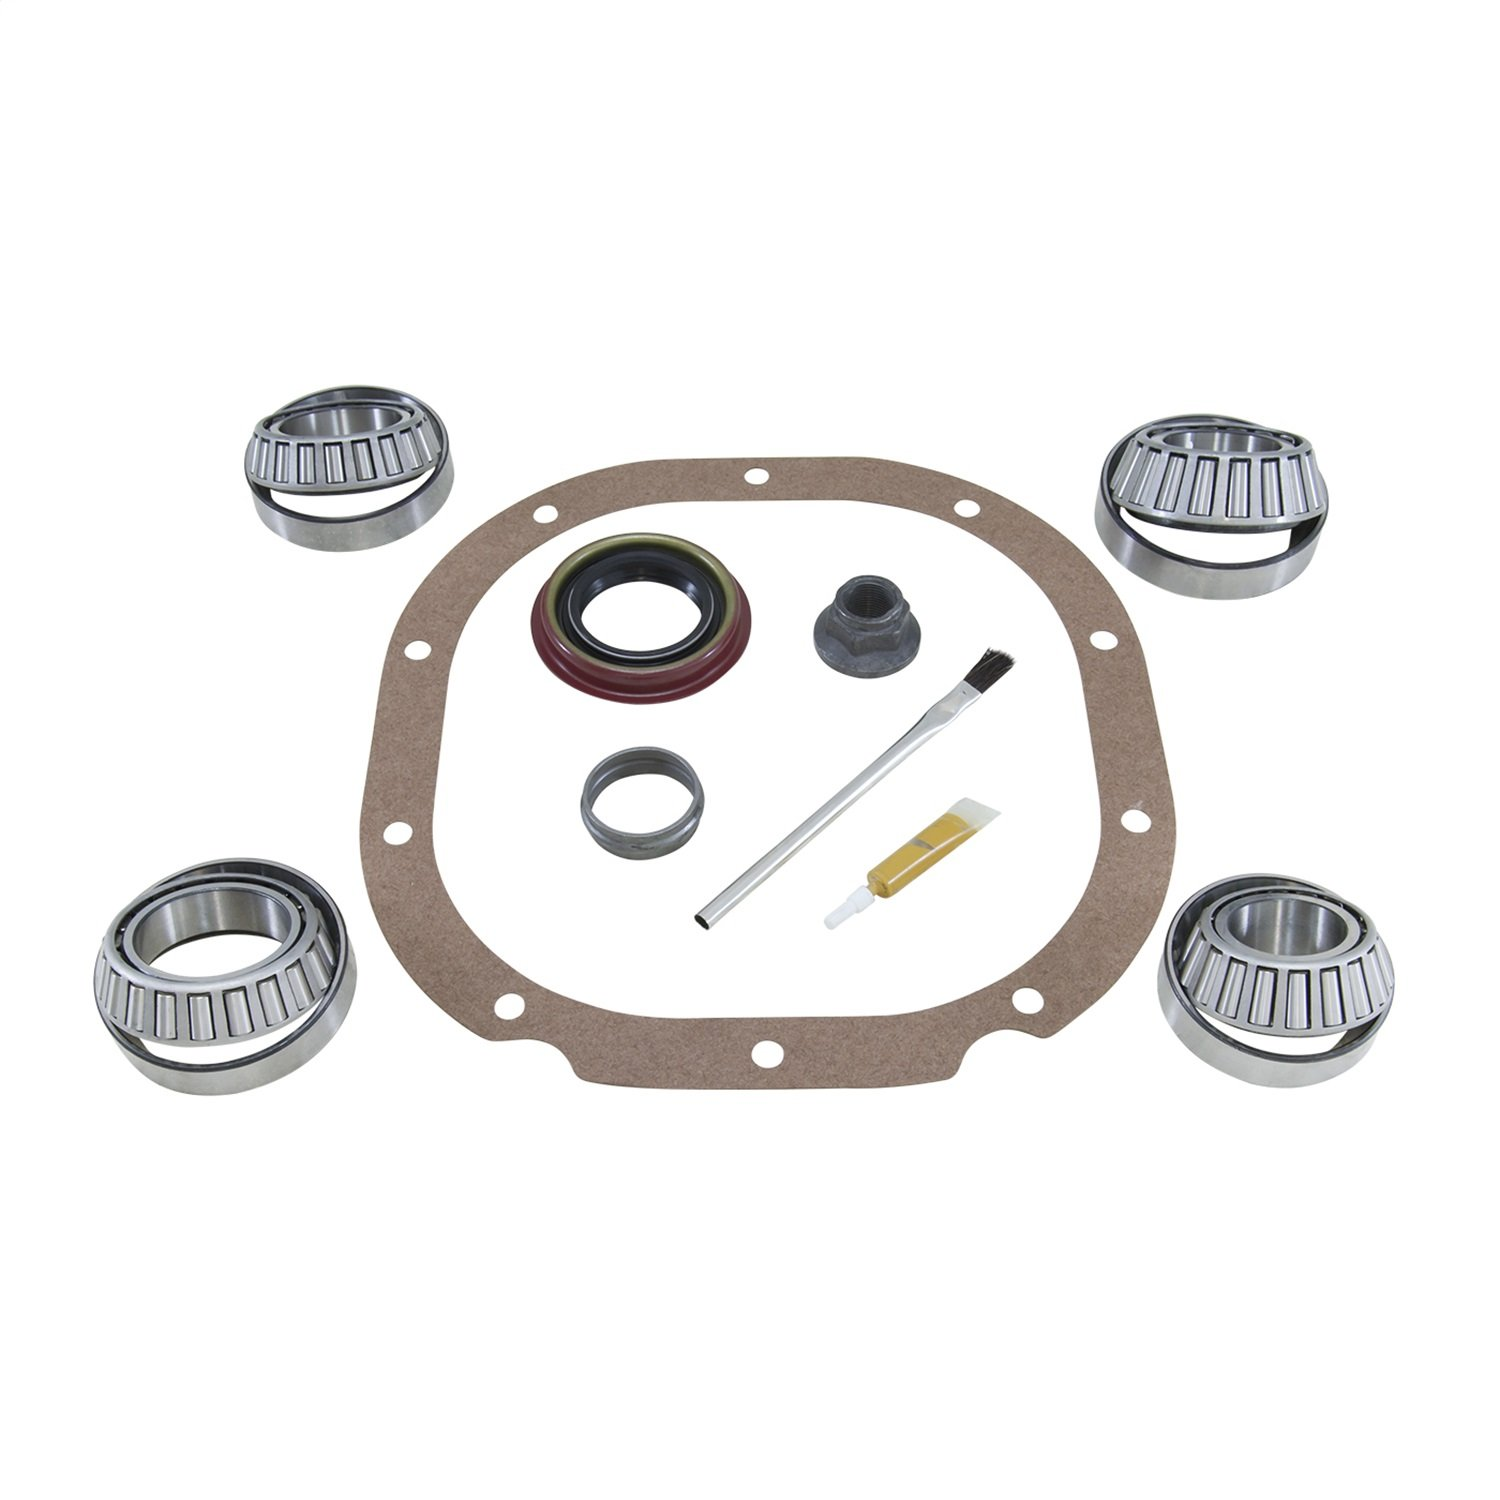 Bearing Installation Kit for Ford 8.8 Differential BK F8.8 Yukon Gear /& Axle